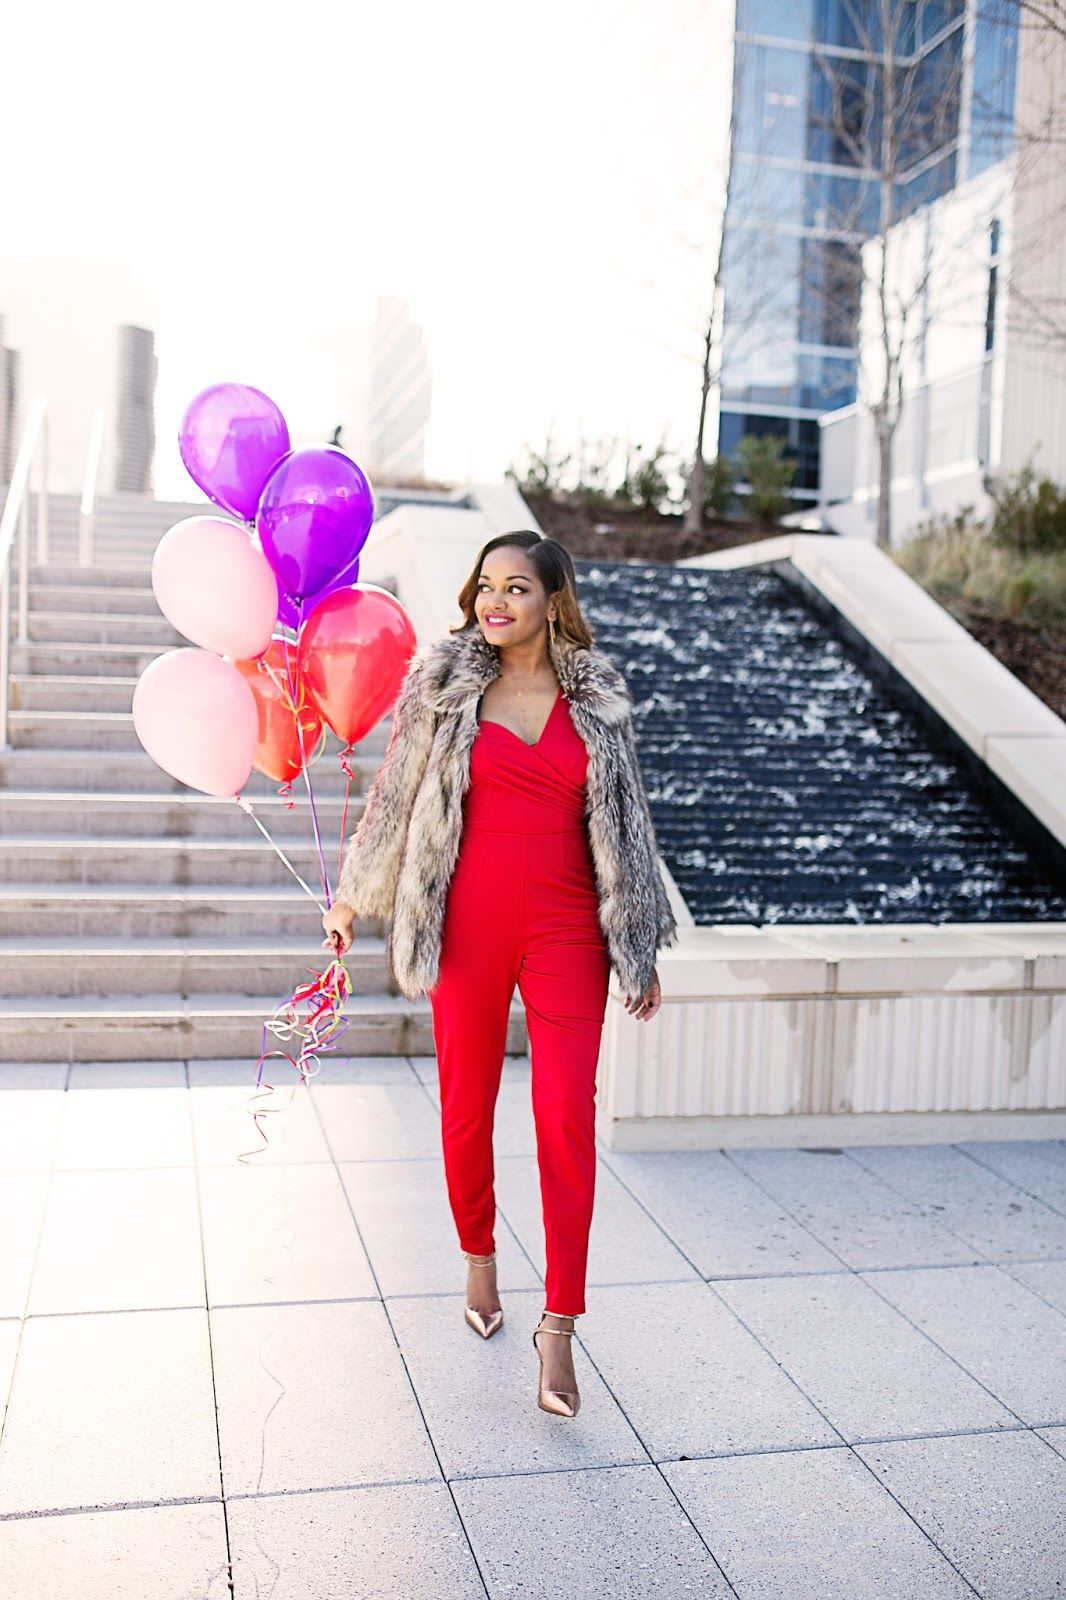 b118b0fa0559 asos red jumpsuit- valentines day outfit ideas- zara metallic heels- asos  faux fur jacket- how to wear jumpsuit- fashion blogger- black girl blogger-  dallas ...